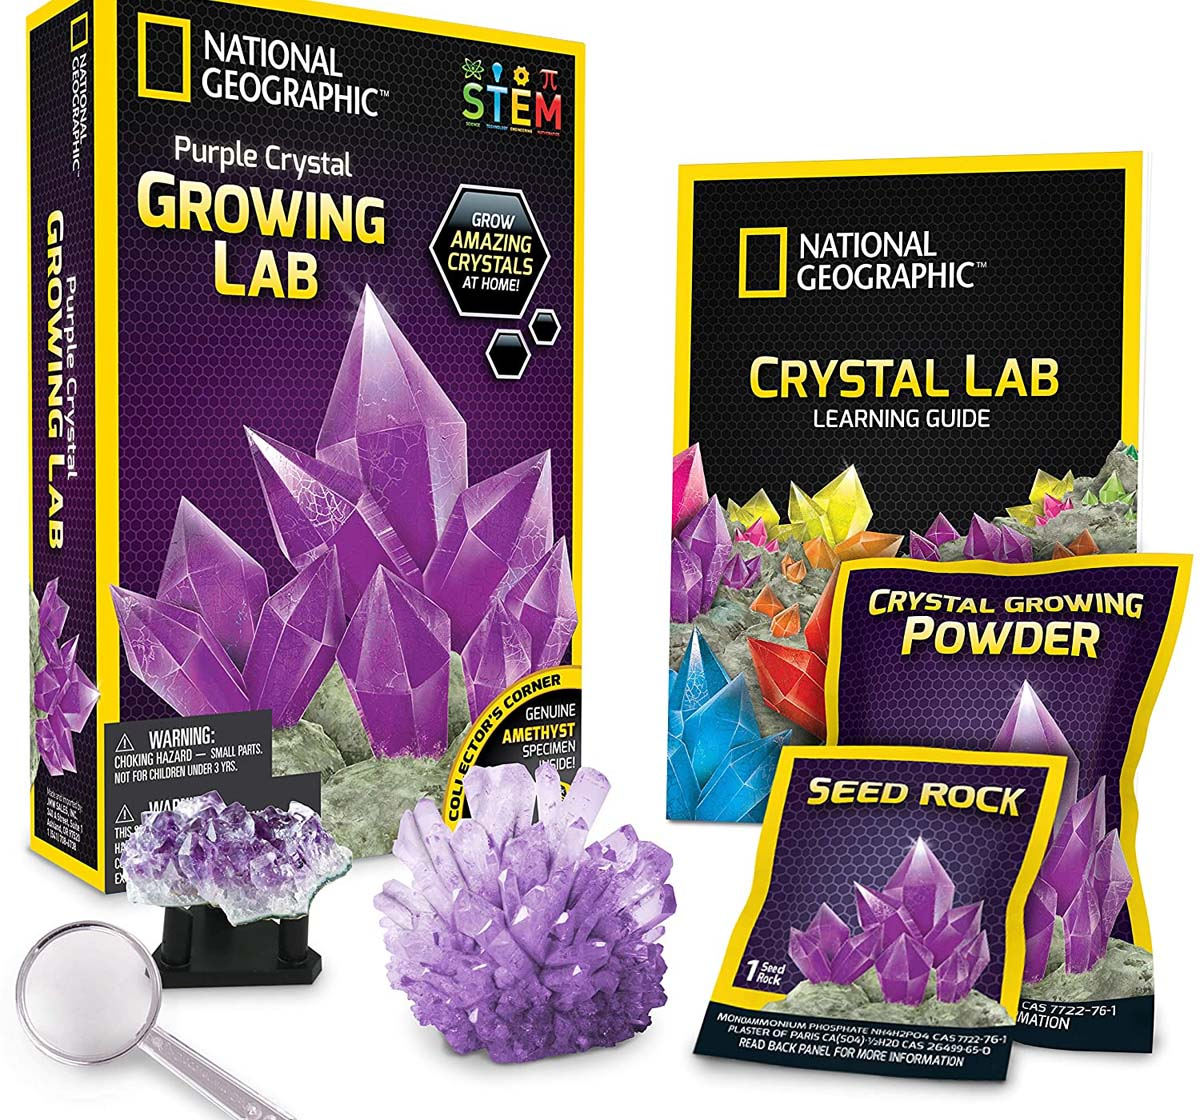 National Geographic   National Geographic Purple Crystal Growing Lab - Diy Crystal Creation Science Kits for Kids age 8Y+